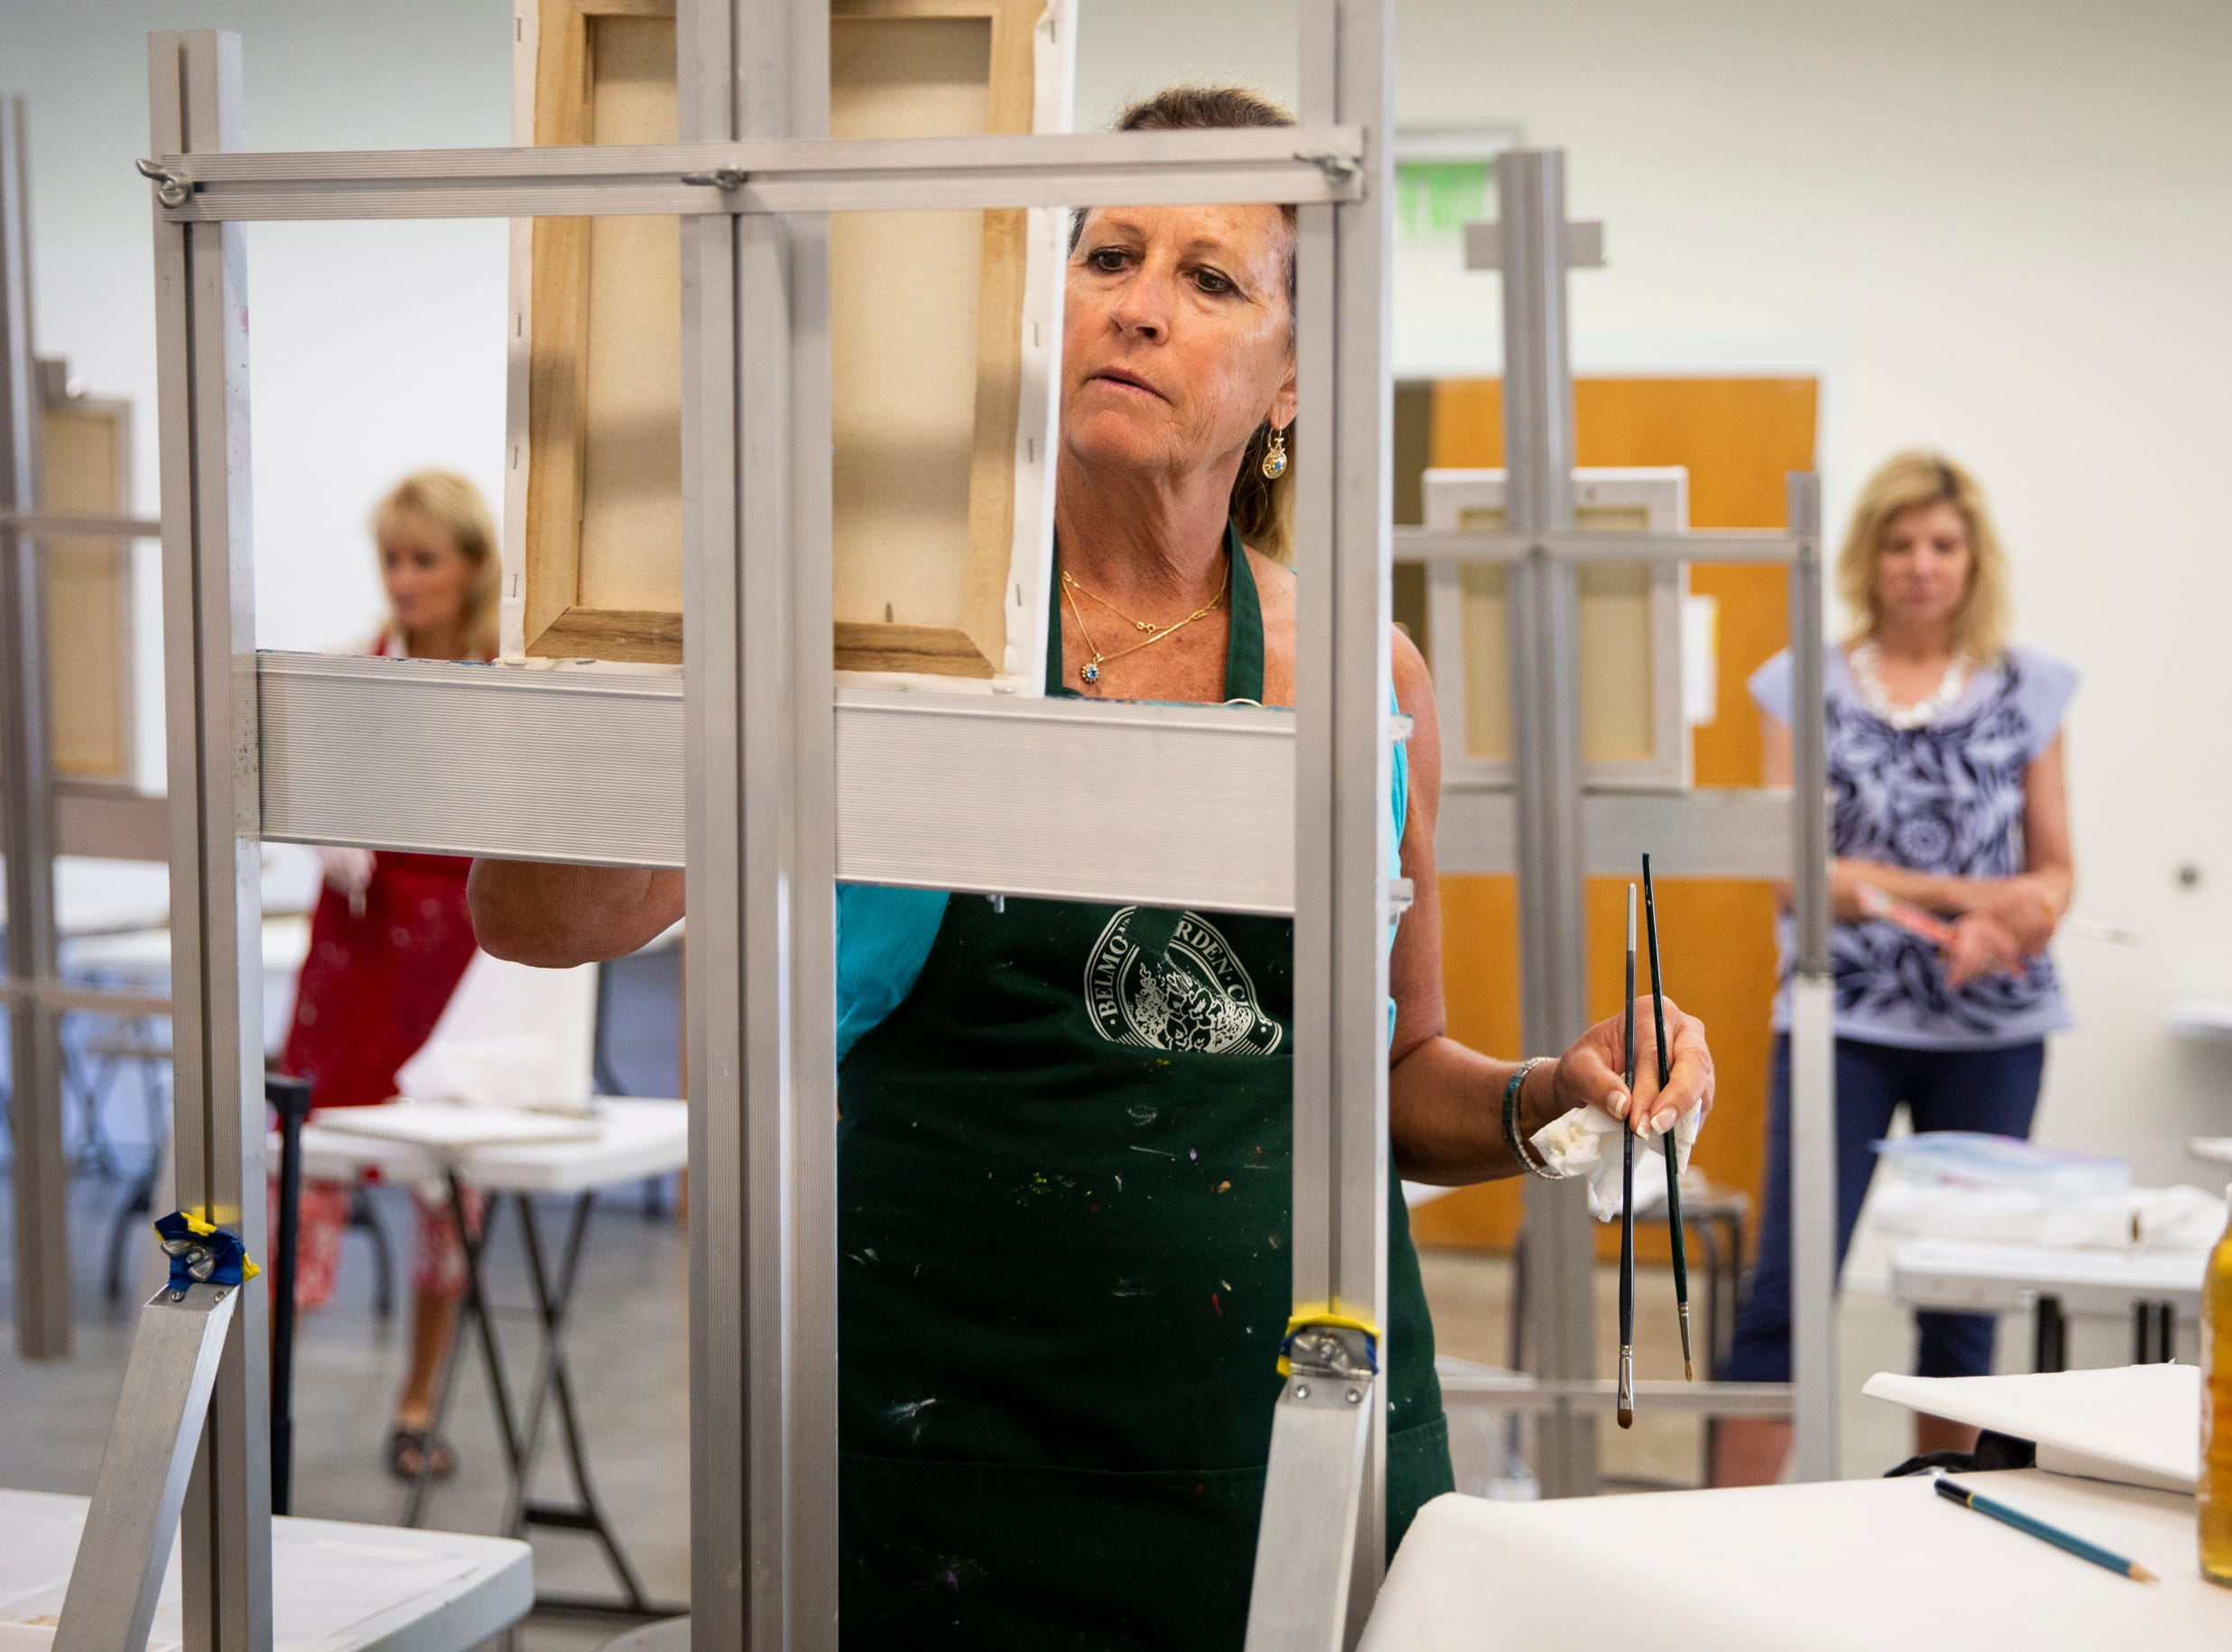 From left to right, Gaby Peden, Maryellen Shea, and Mary Kent follow along with instructor Angela Anderson's directions during a palette knife painting class at the Naples Art Association in Naples on Wednesday, March 27, 2019.